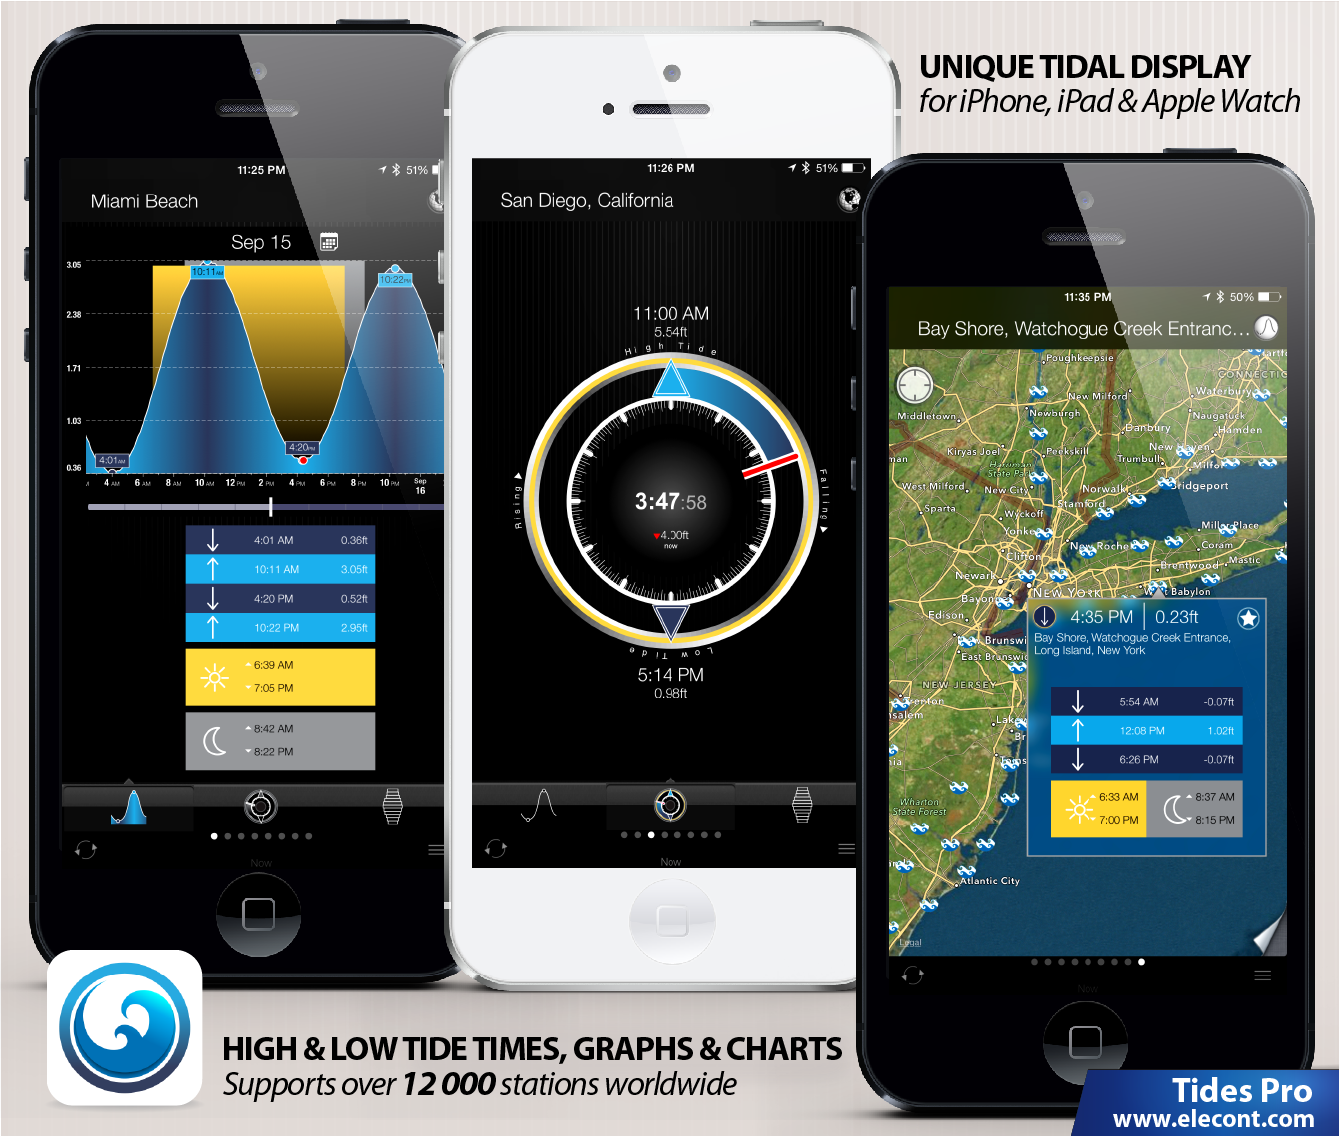 Tides PRO for iPhone, iPad and Apple Watch- Get high and low tide times, tide charts, tide tables for  over 12000 of ports, harbors and coastal locations around the World . The app reports high and Low tide times, tide predictions with up to the minute accuracy , Sunrise, Sunset, Moonrise, Moonset times, Solunar charts, Current water level and unique 'Tide watch' interface for Apple Watch.